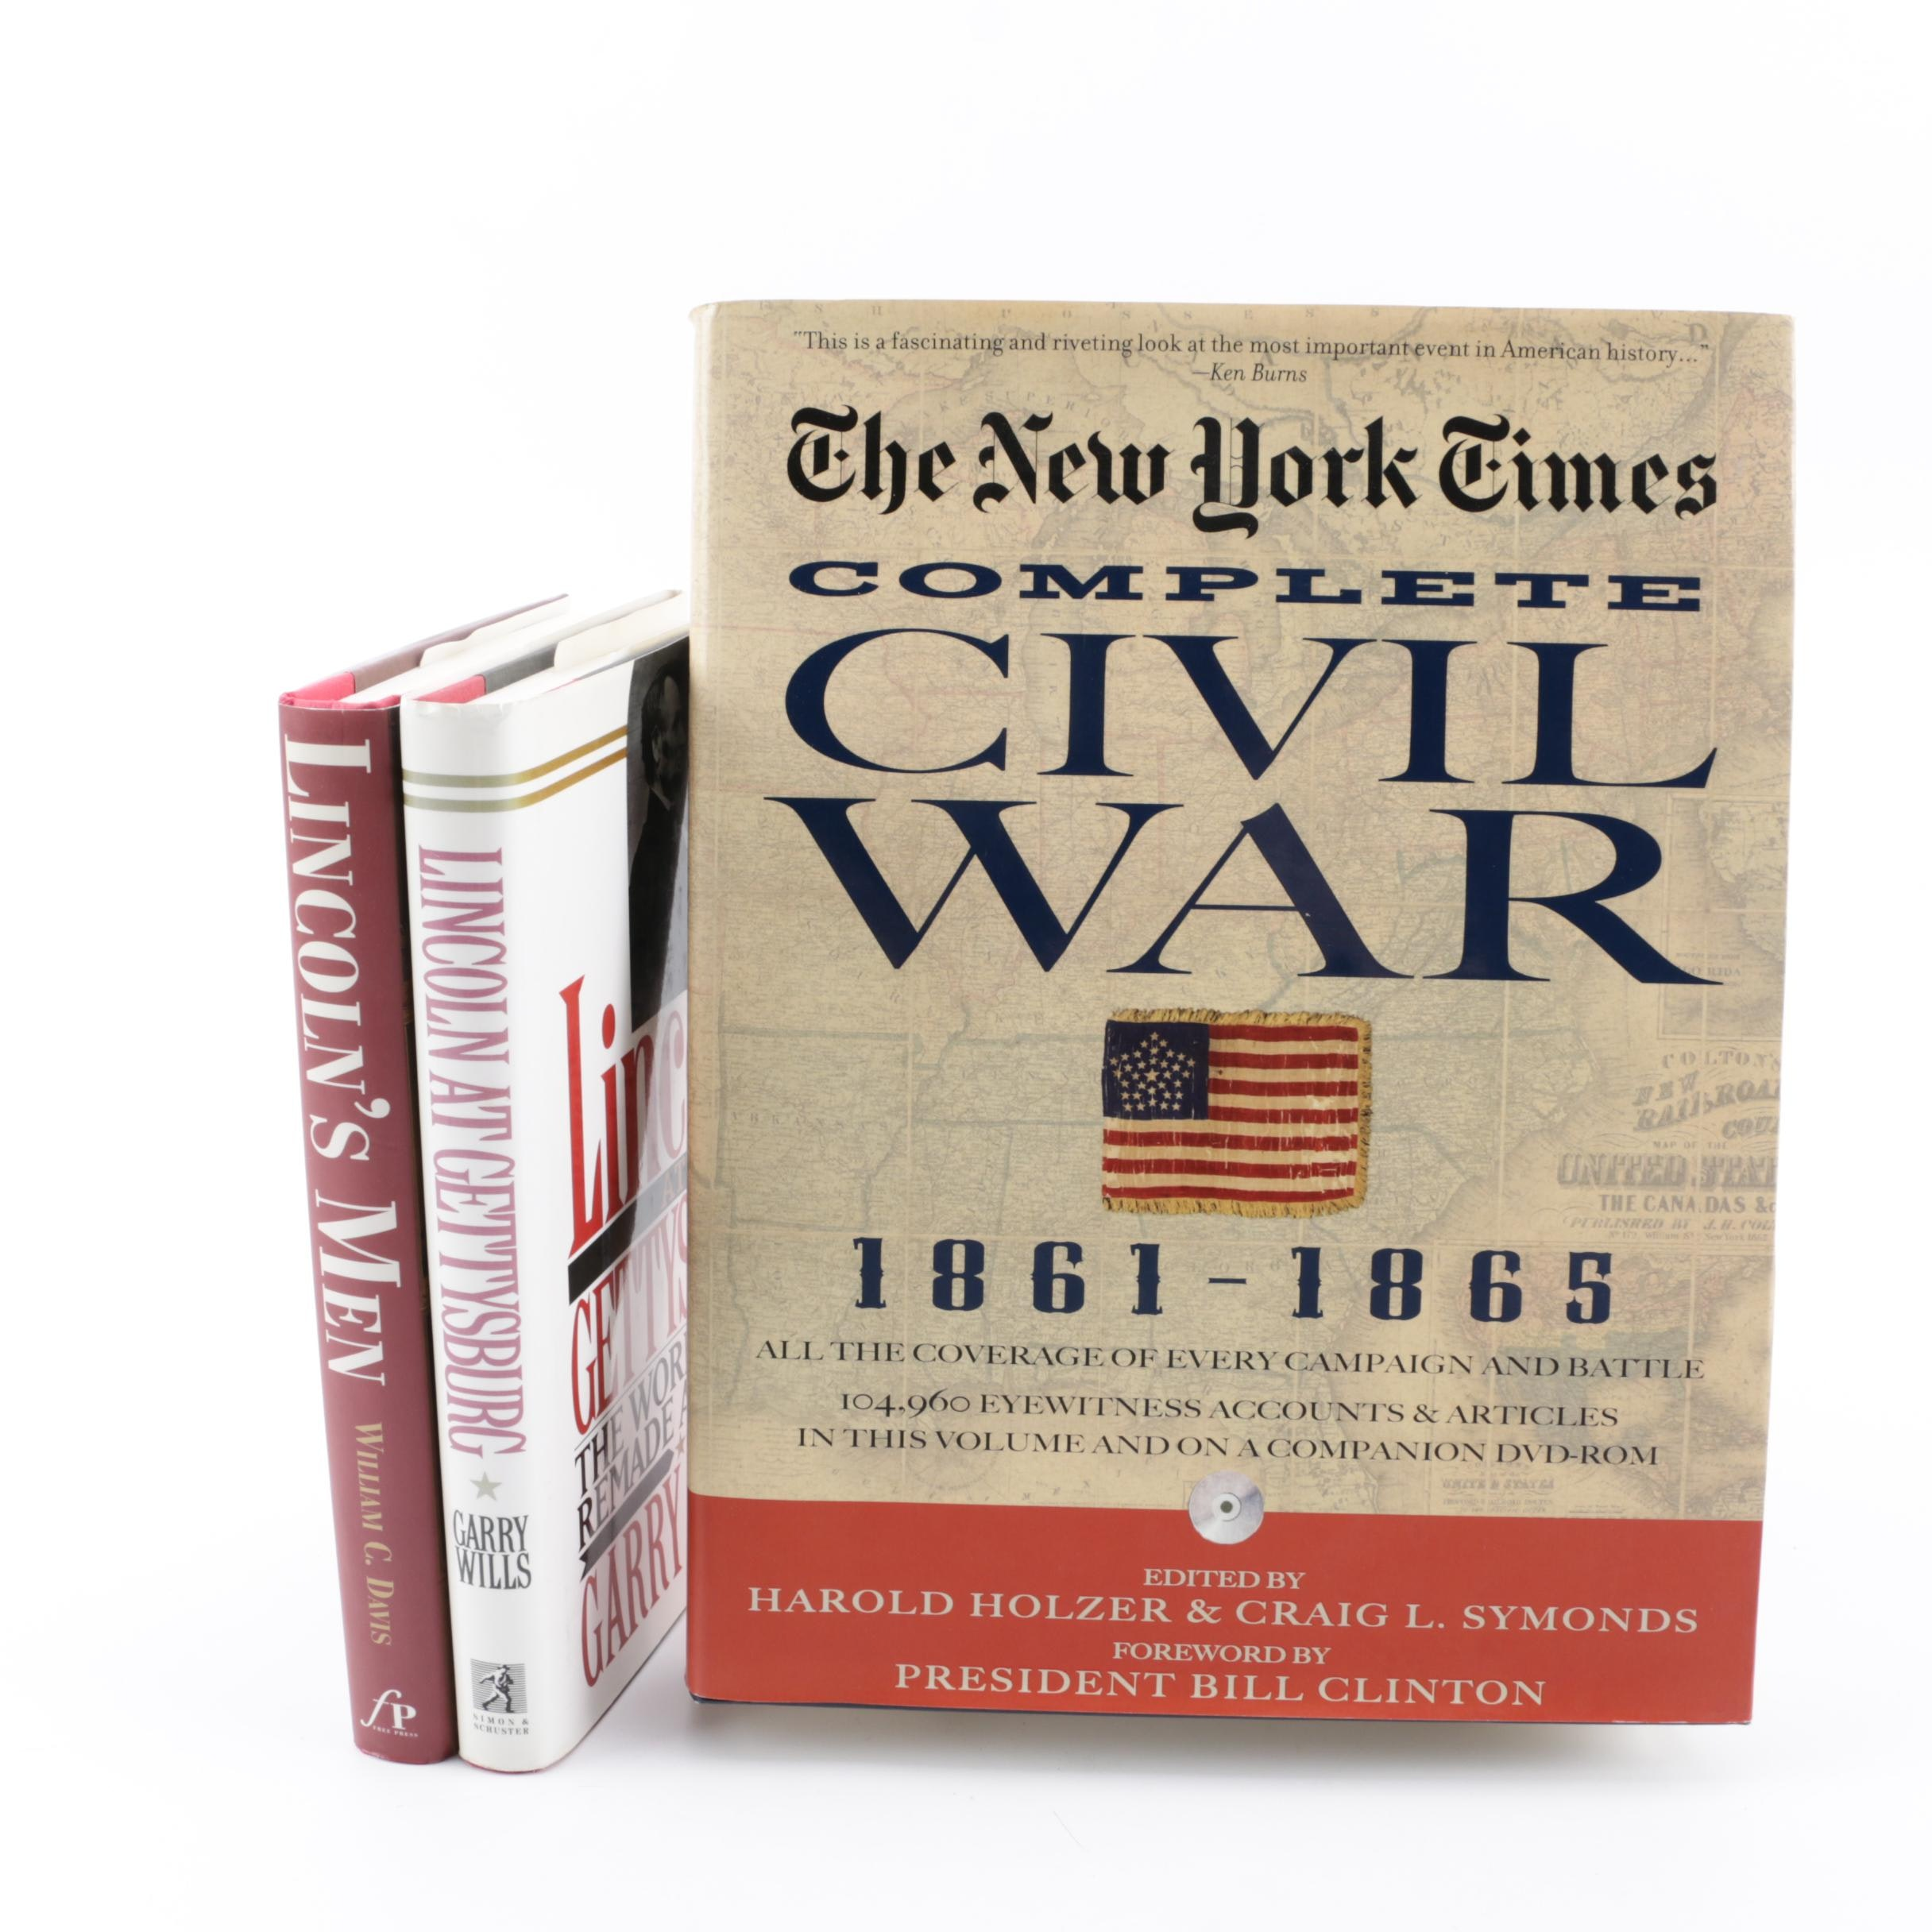 Books on the American Civil War